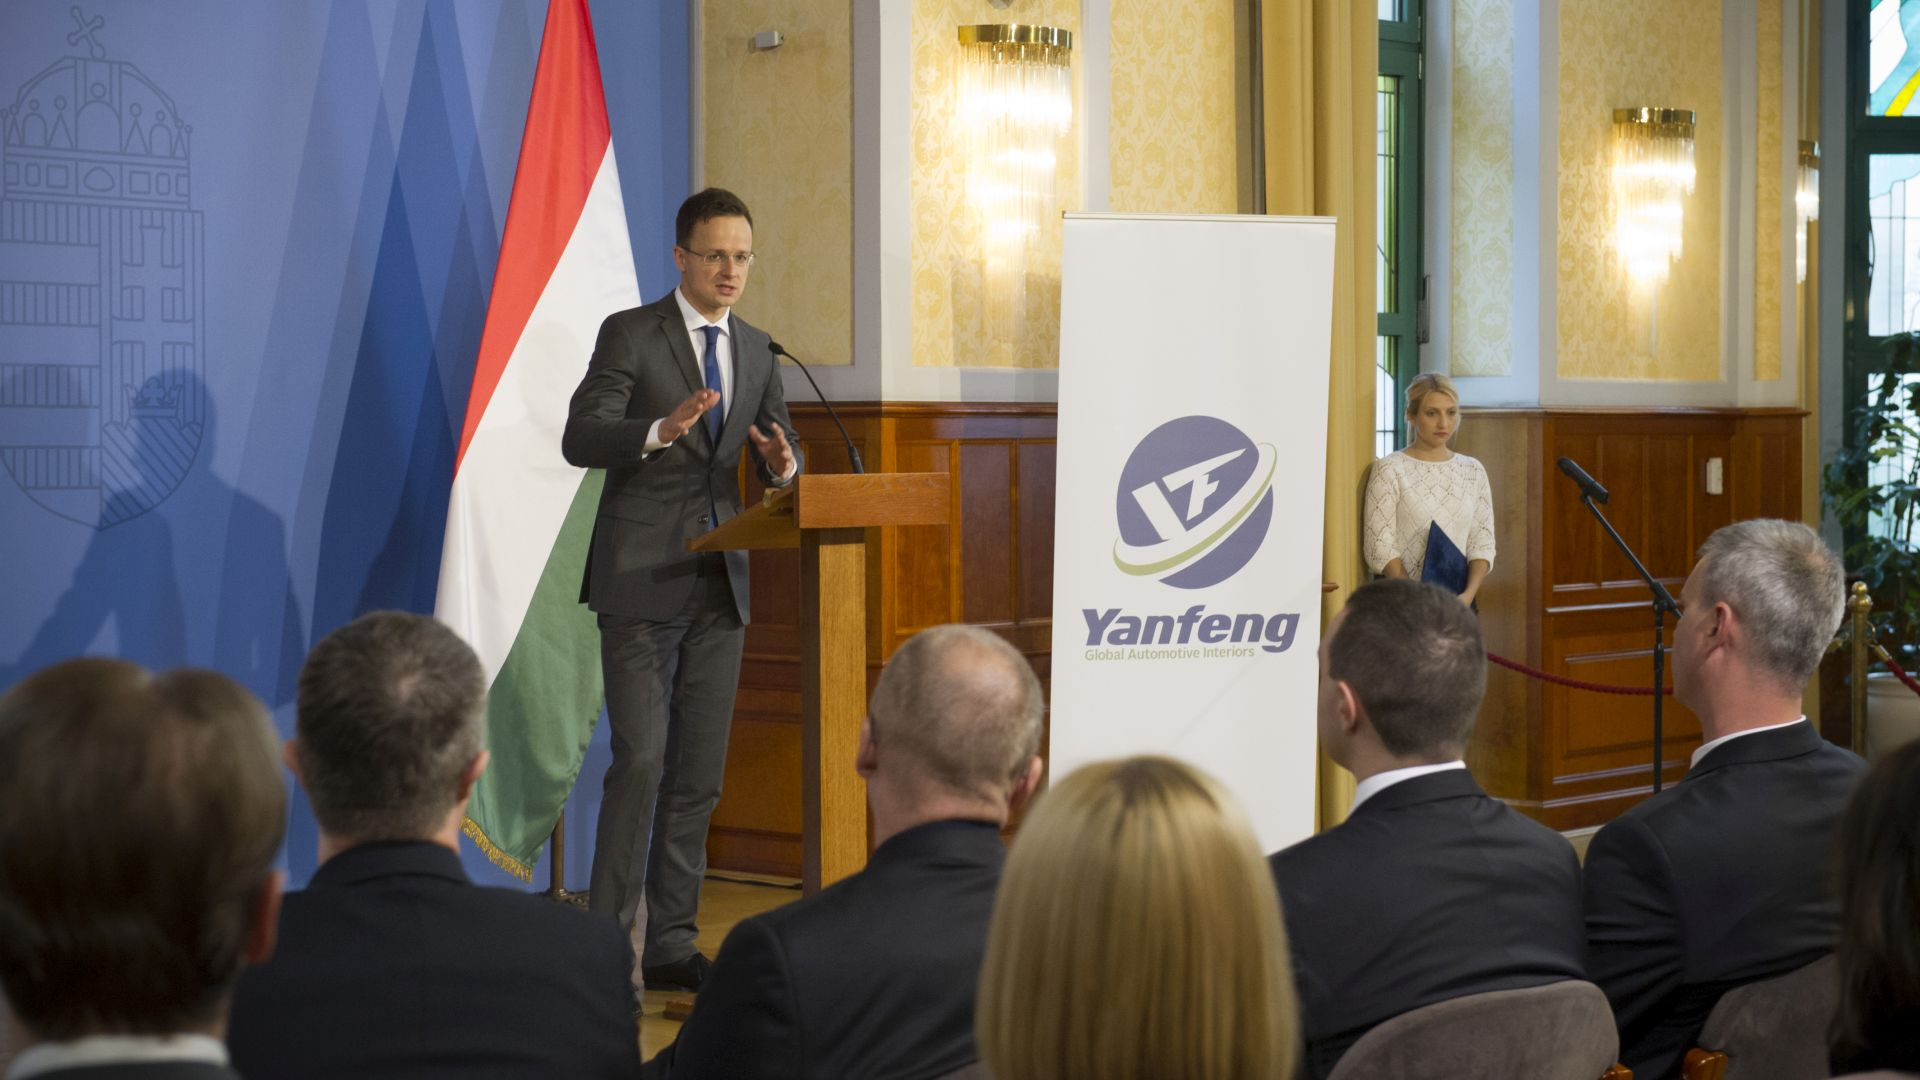 Yanfeng creates 450 new jobs in Pápa